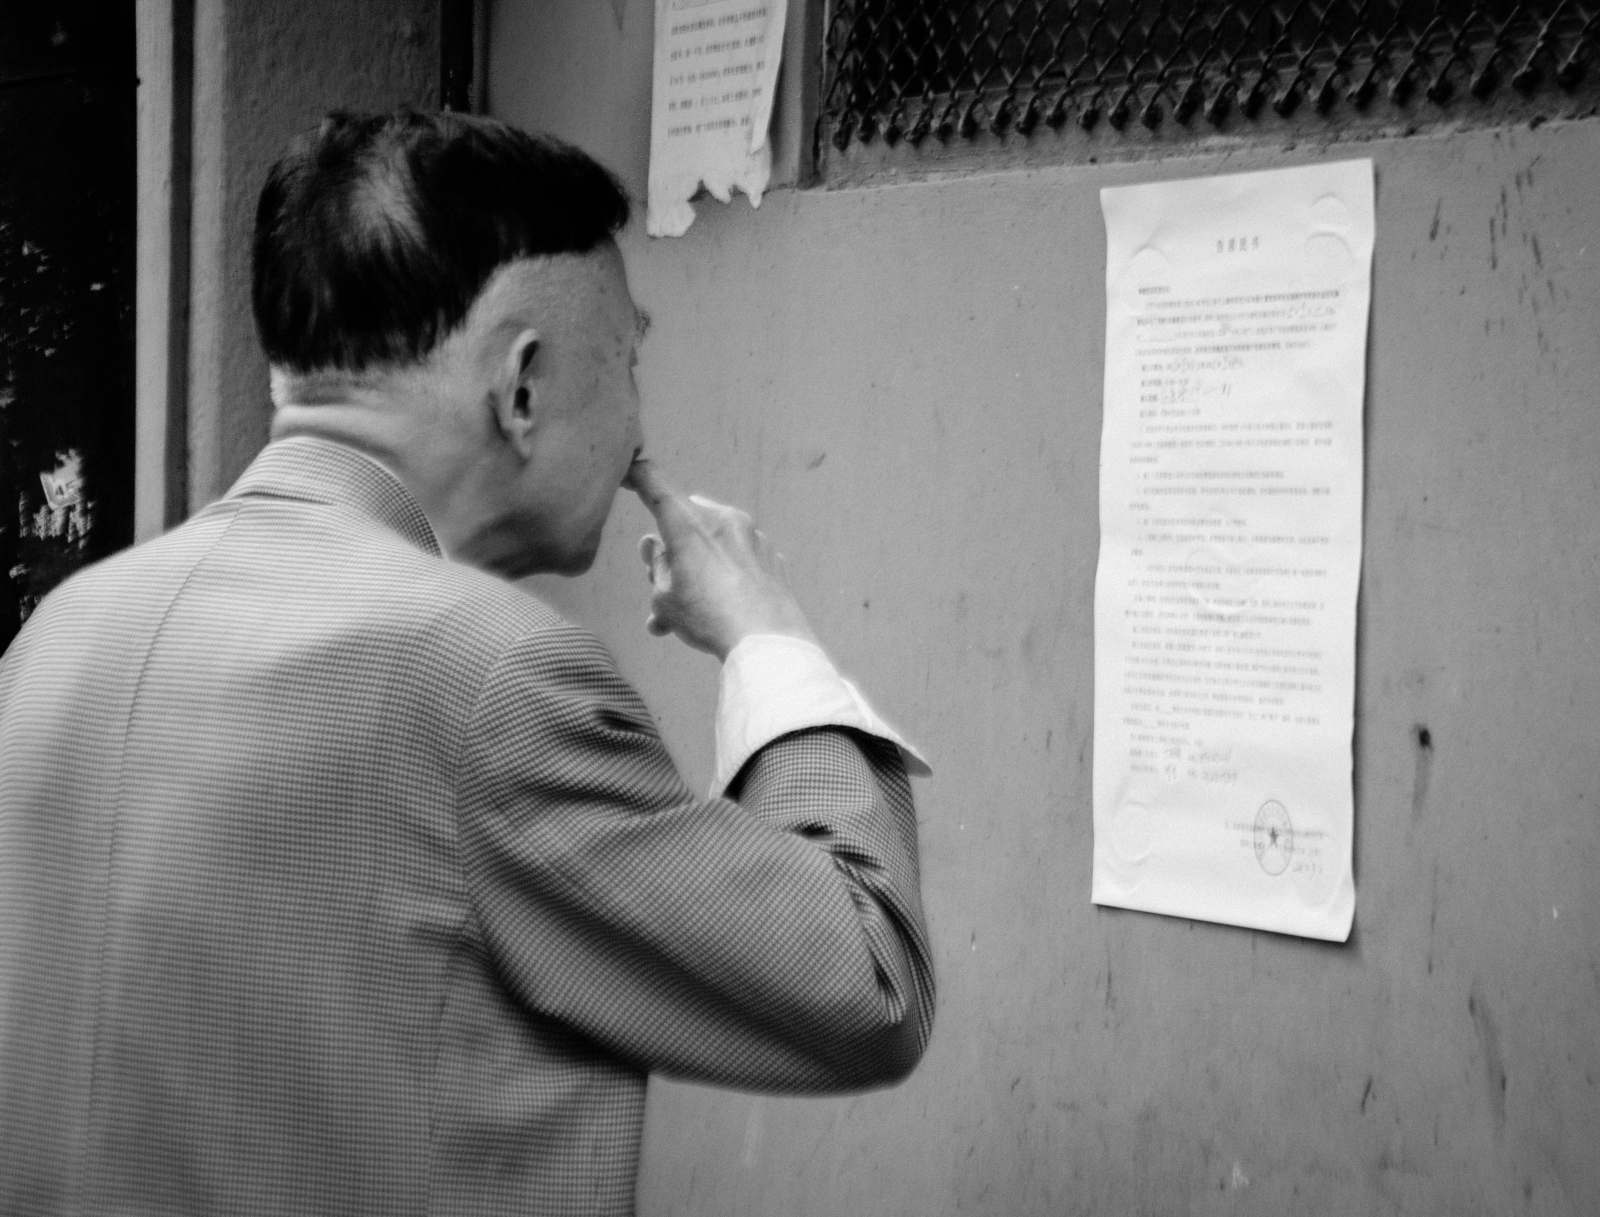 A man reads an official eviction/relocation notice posted on a community wall in his neighborhood.